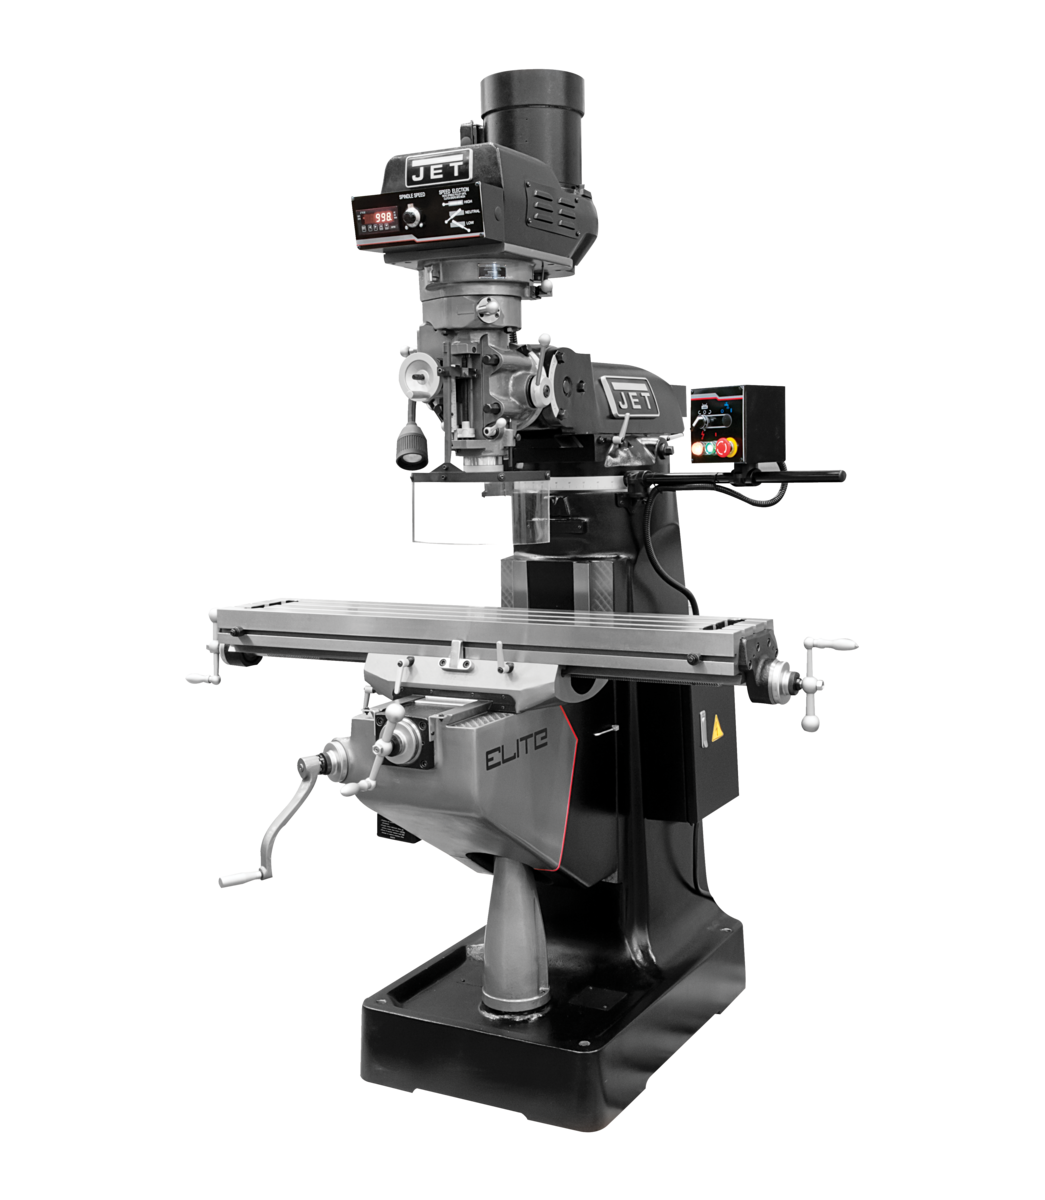 EVS-949 Mill with 2-Axis ACU-RITE 303  DRO and X, Y-Axis JET Powerfeeds